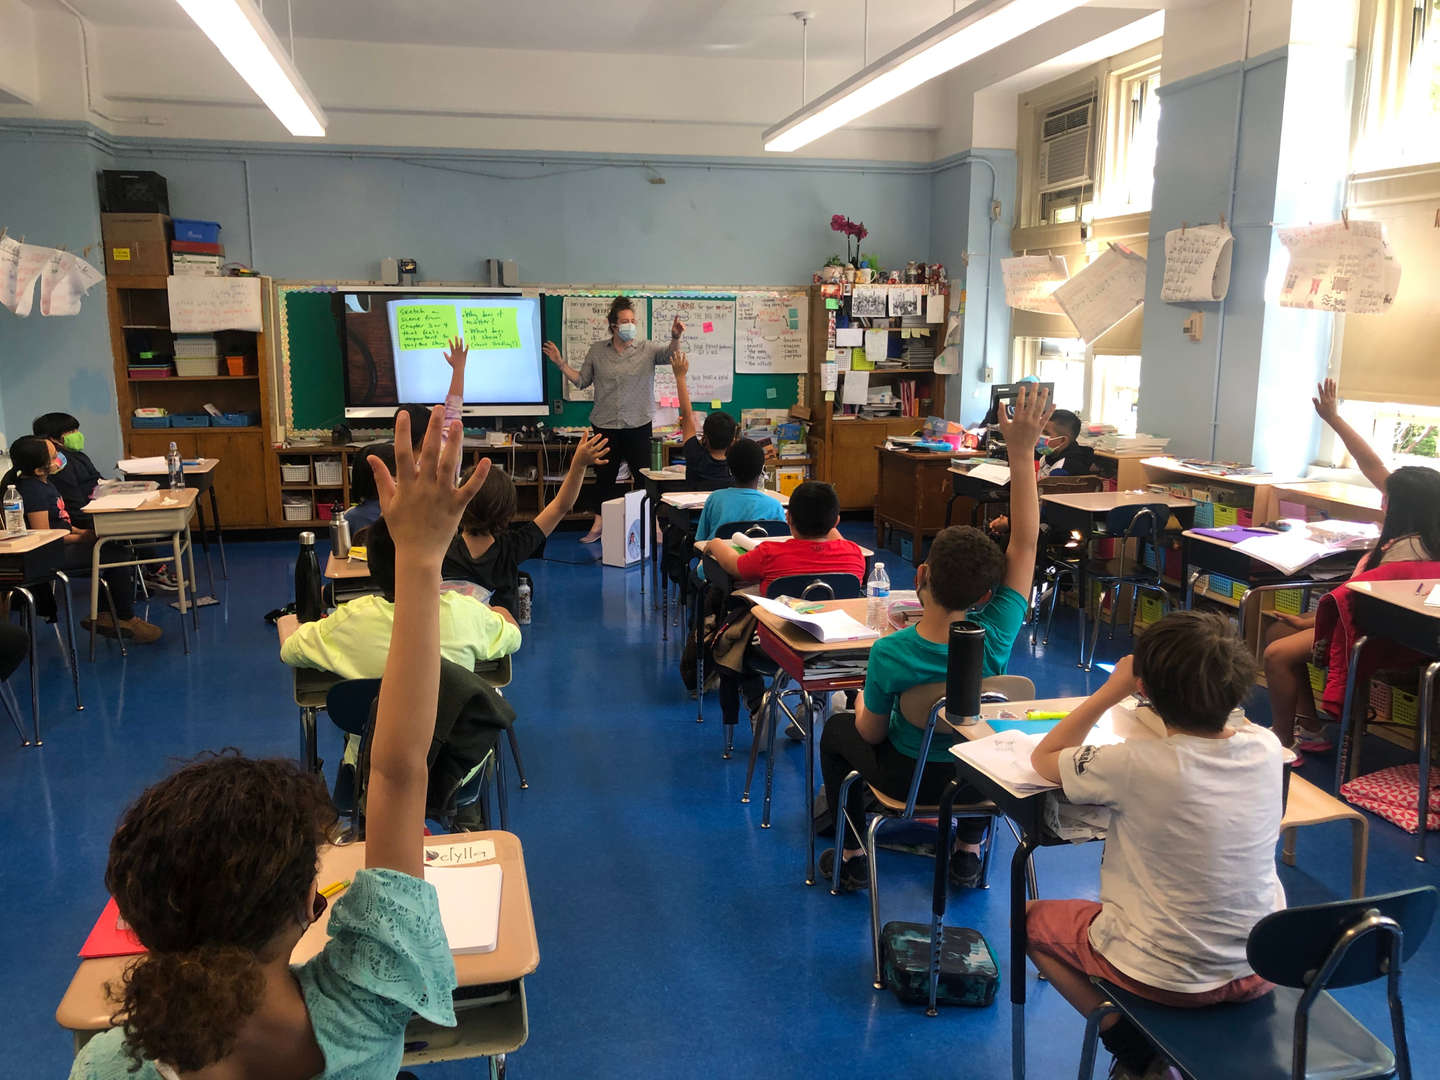 Students raise their hands during class.